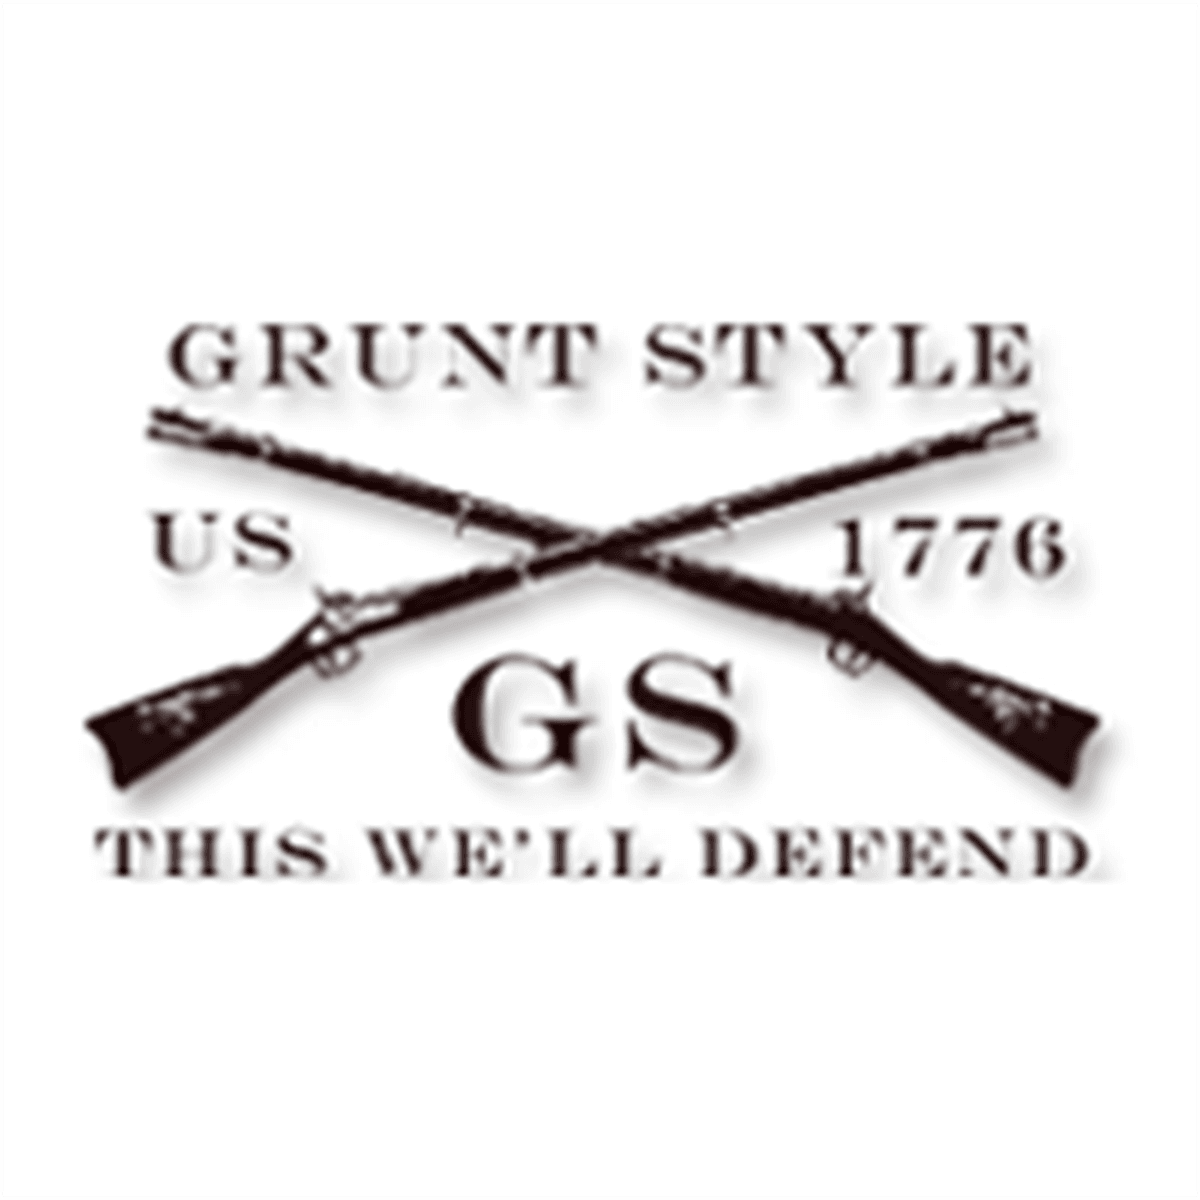 948c4743 GRUNT STYLE Pro Deal Discount for Military & Gov't | GovX